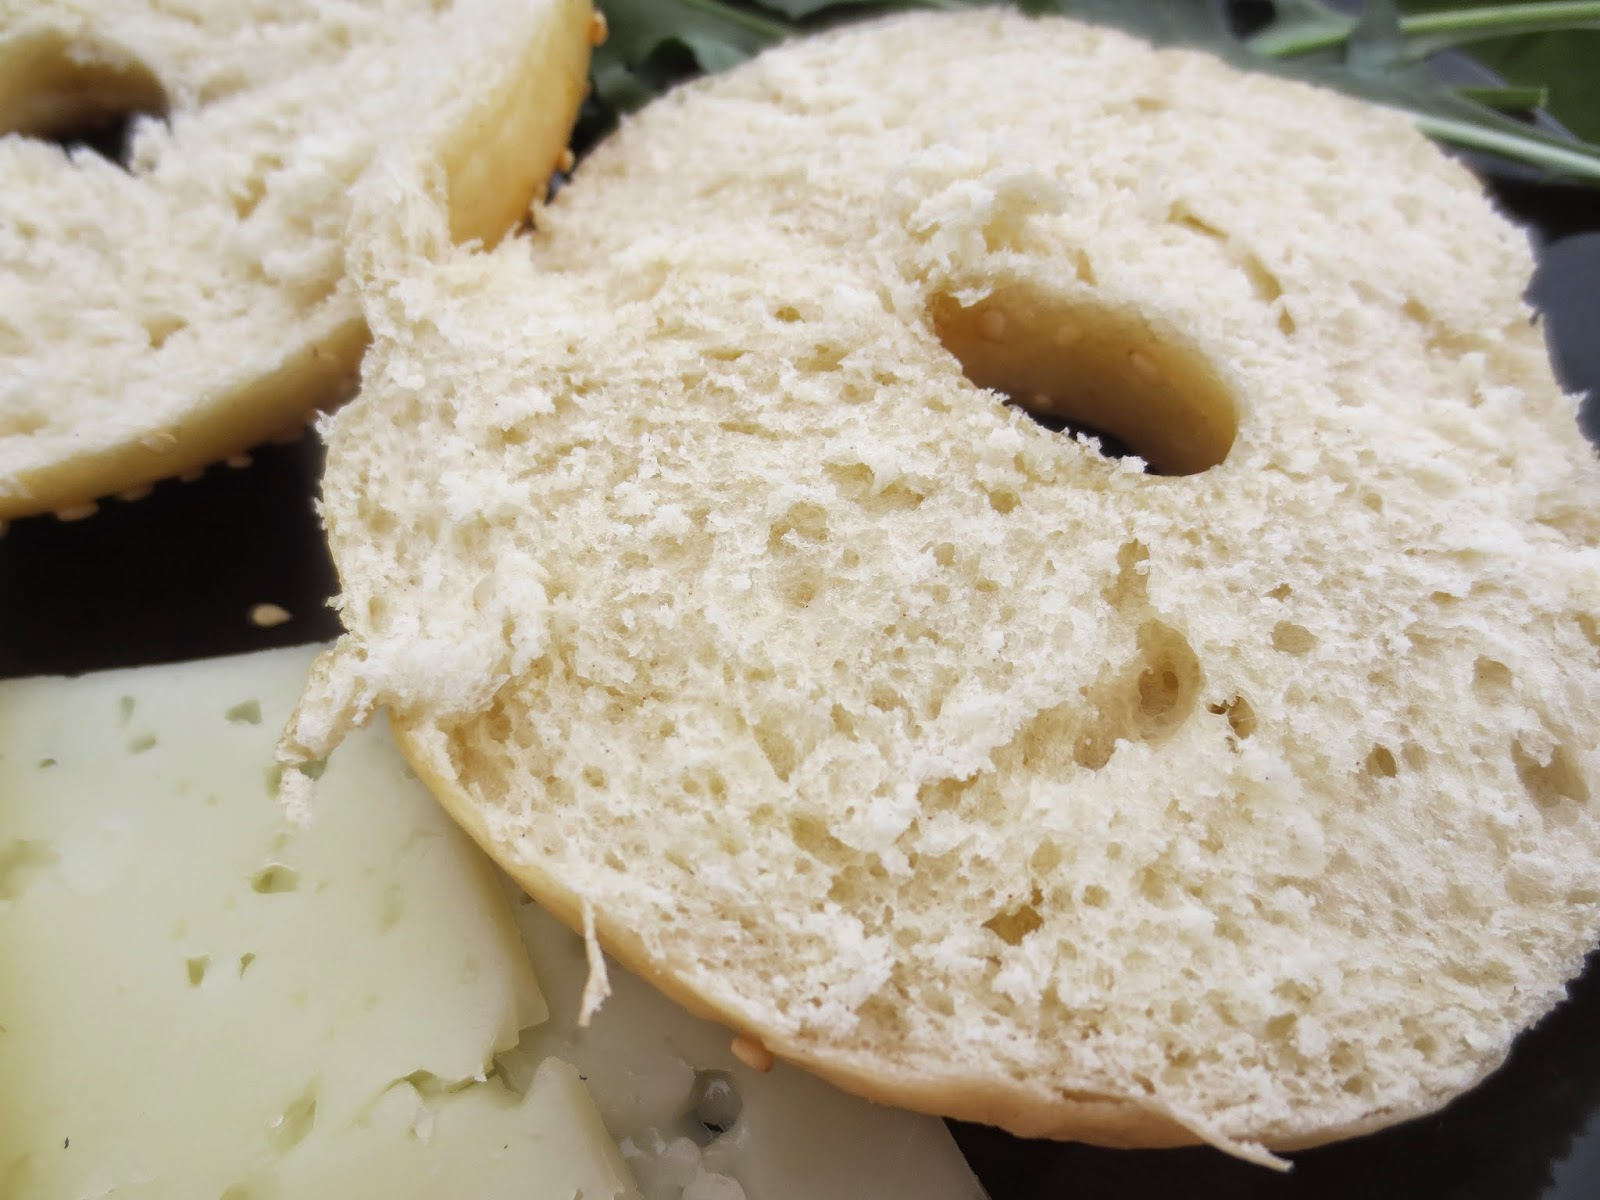 Corte bagels con thermomix